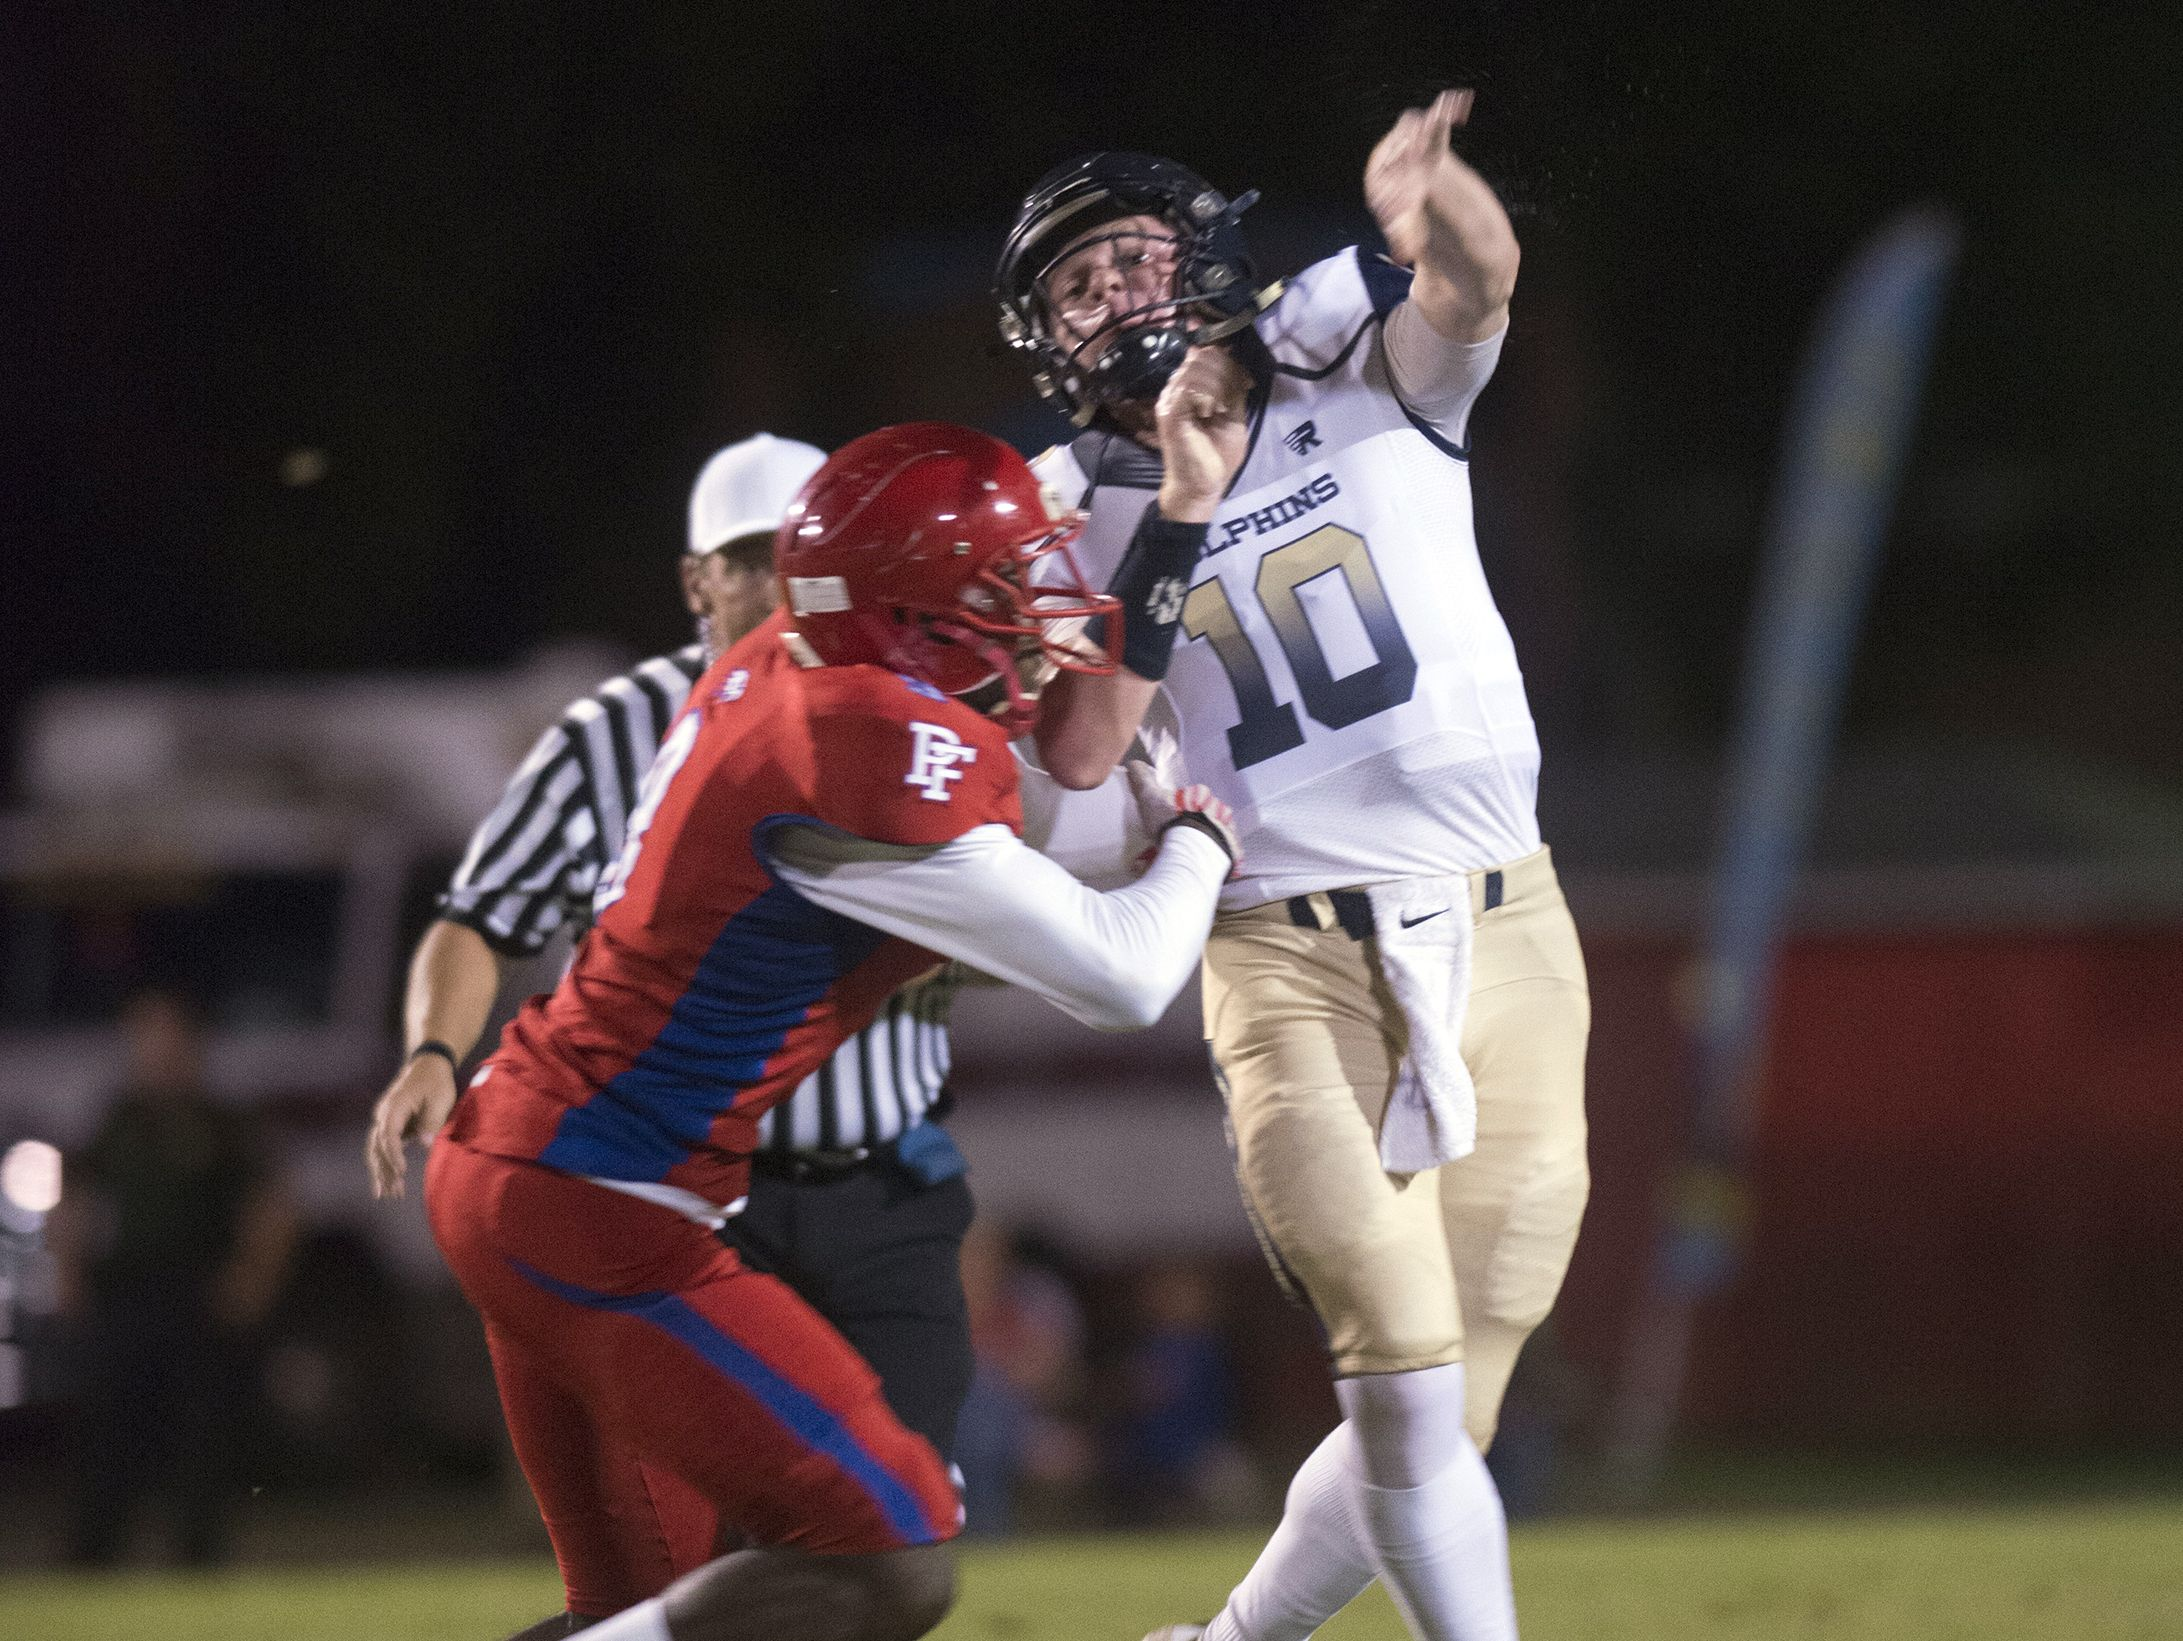 Gulf Breeze quarterback, Tyler Phelps, (No. 10) looks for an open receiver while under pressure from Pine Forest defensive end, Clarence Hicks,(No. 9) during Friday night's game against the Eagles.